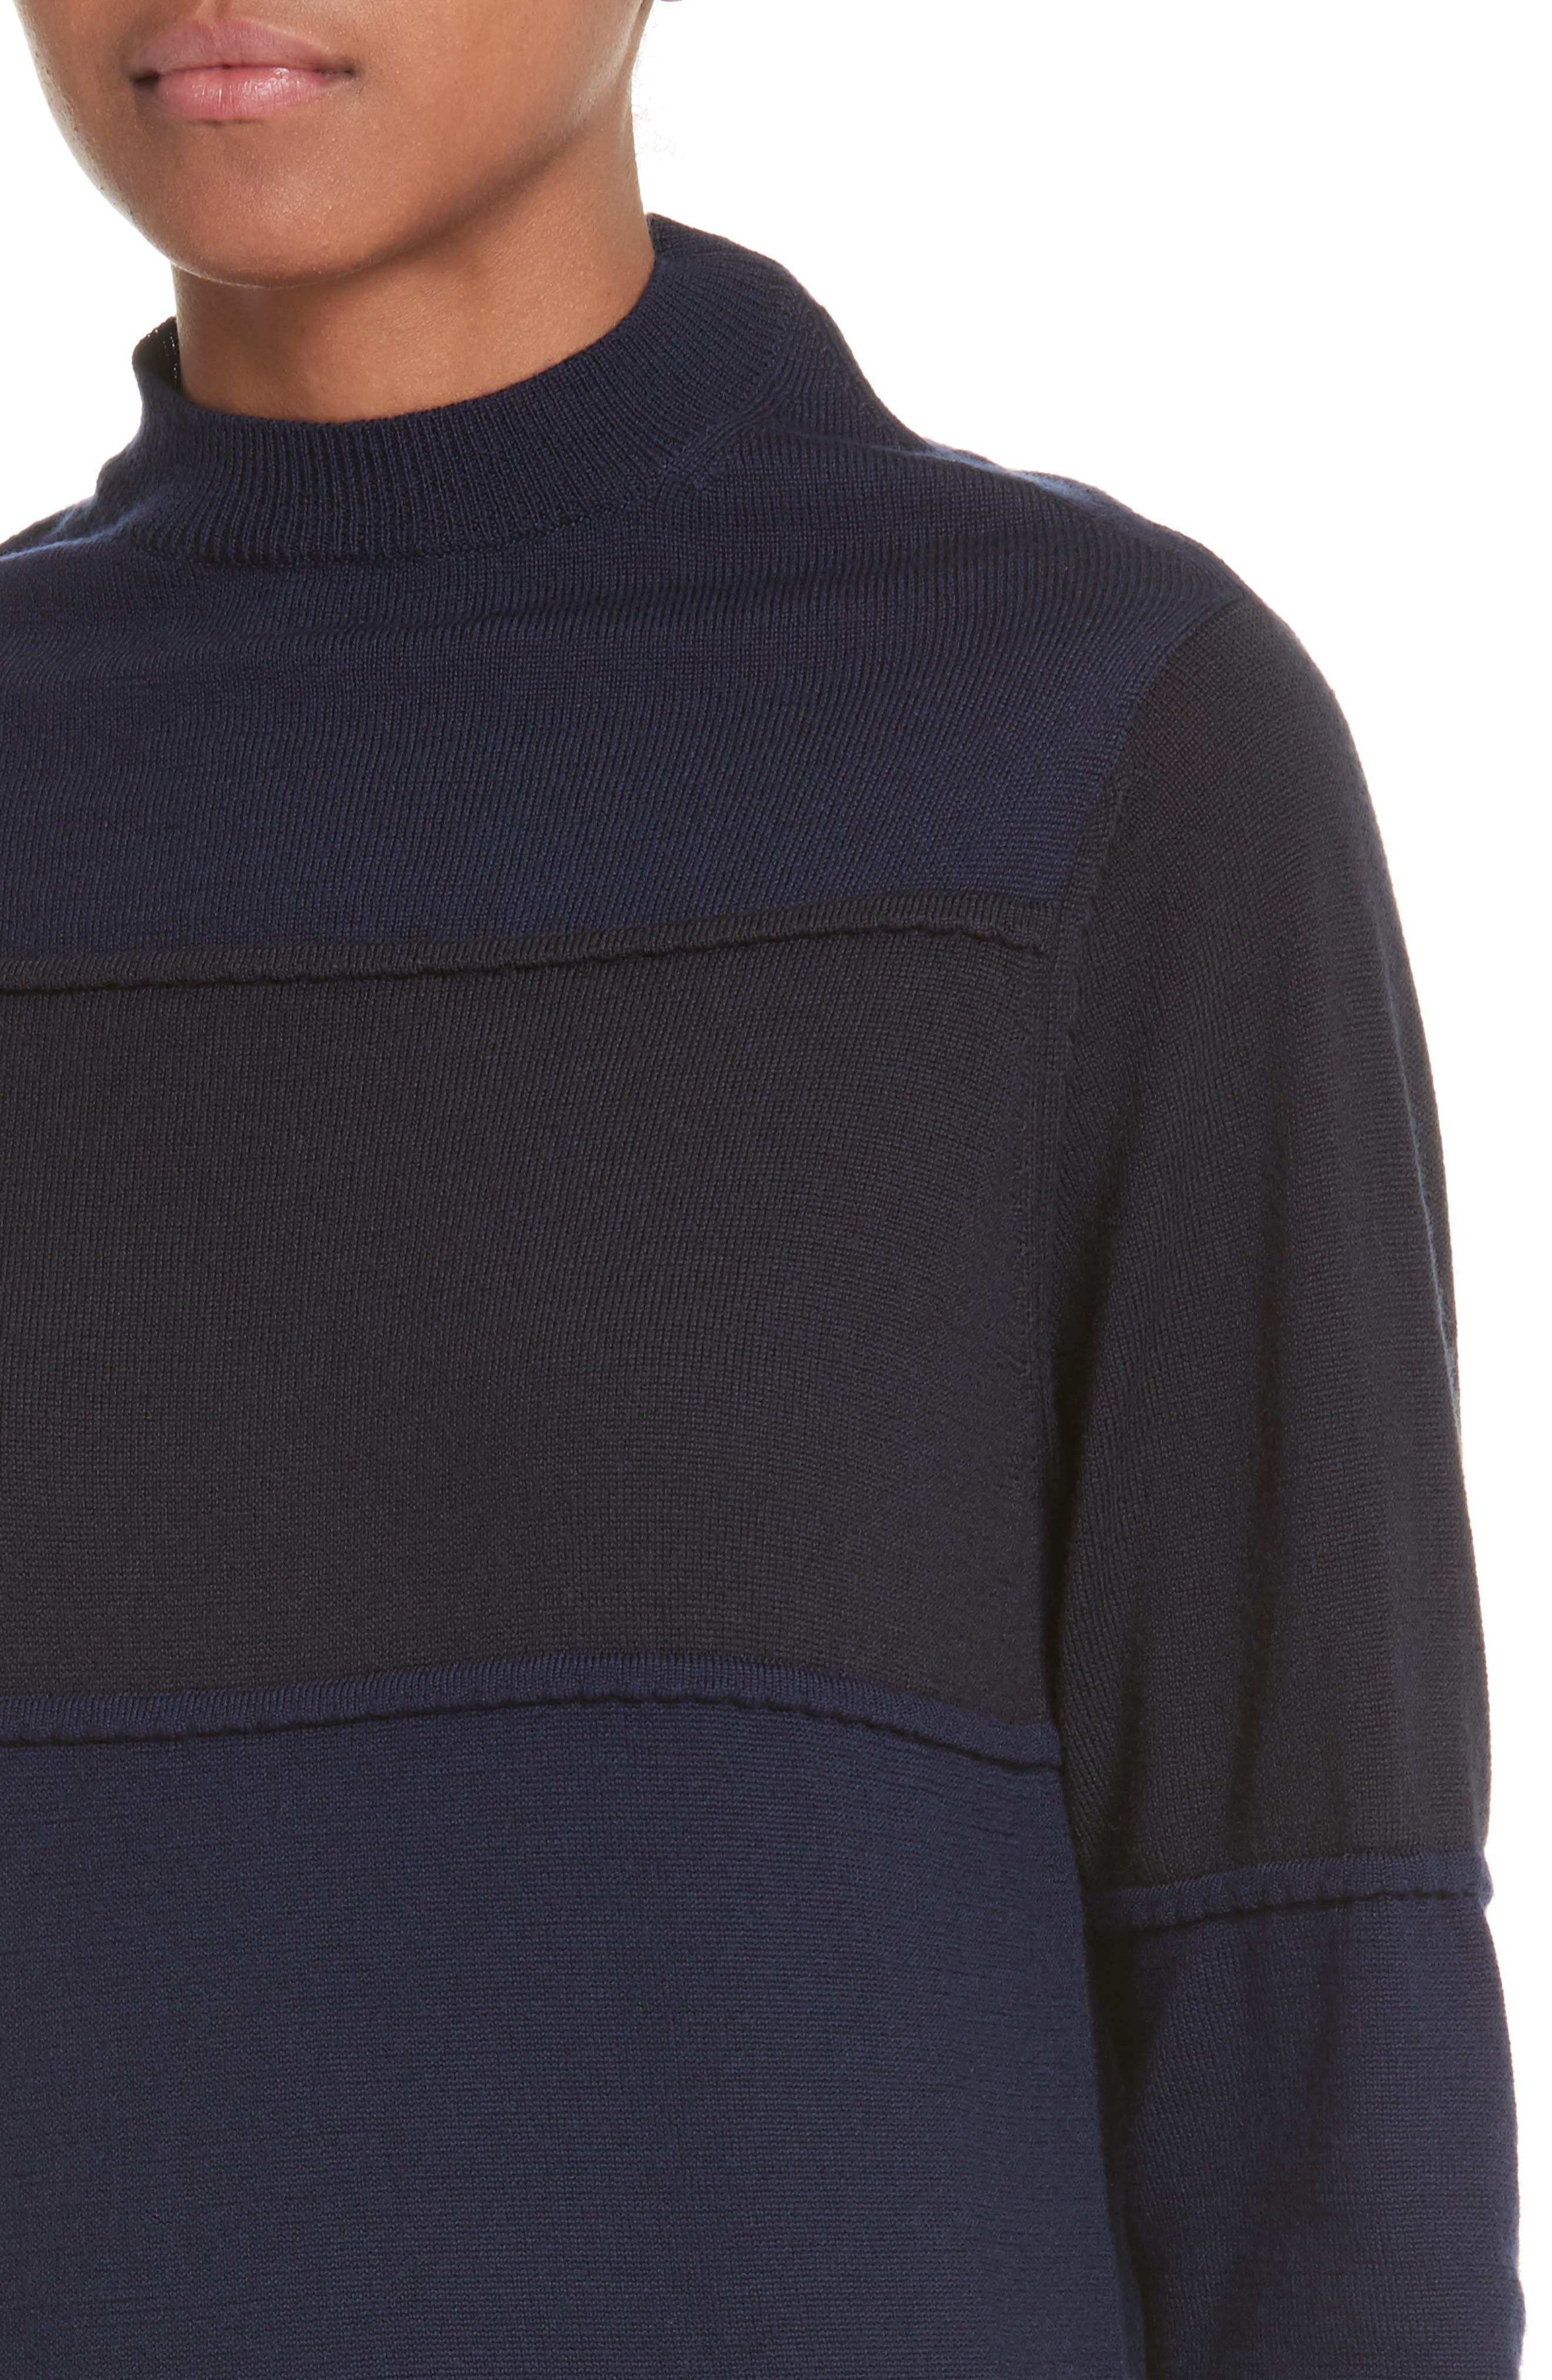 Pintuck Stripe Sweater,                             Alternate thumbnail 4, color,                             Navy